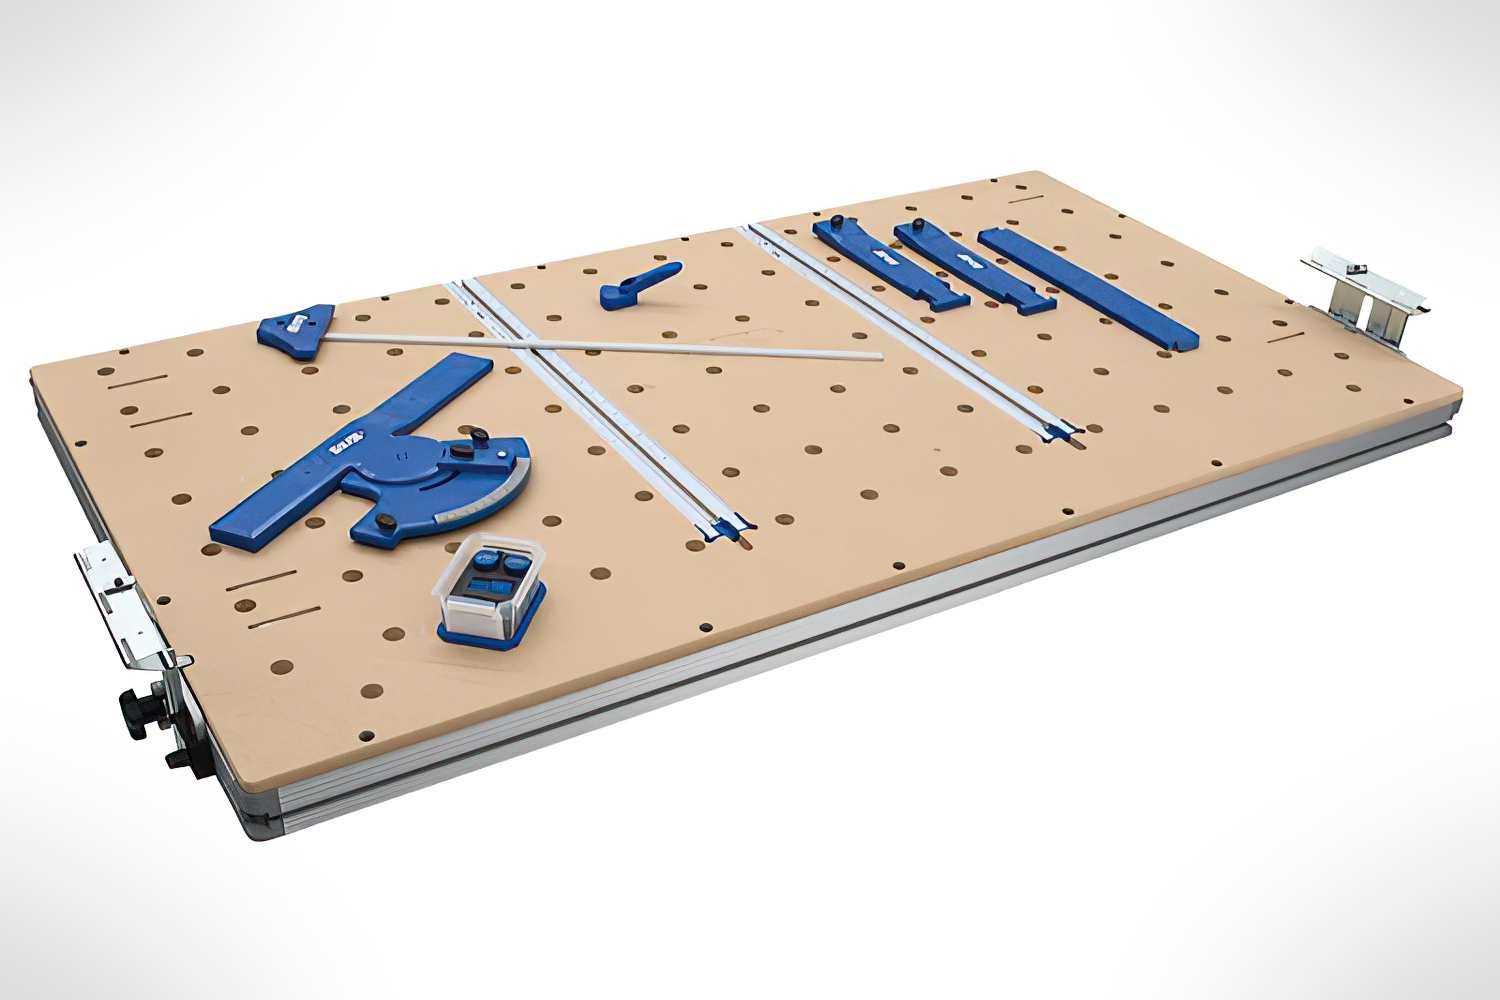 Kreg Adaptive Cutting System Project Table – Top Adaptive Cutting System Project Table – Top